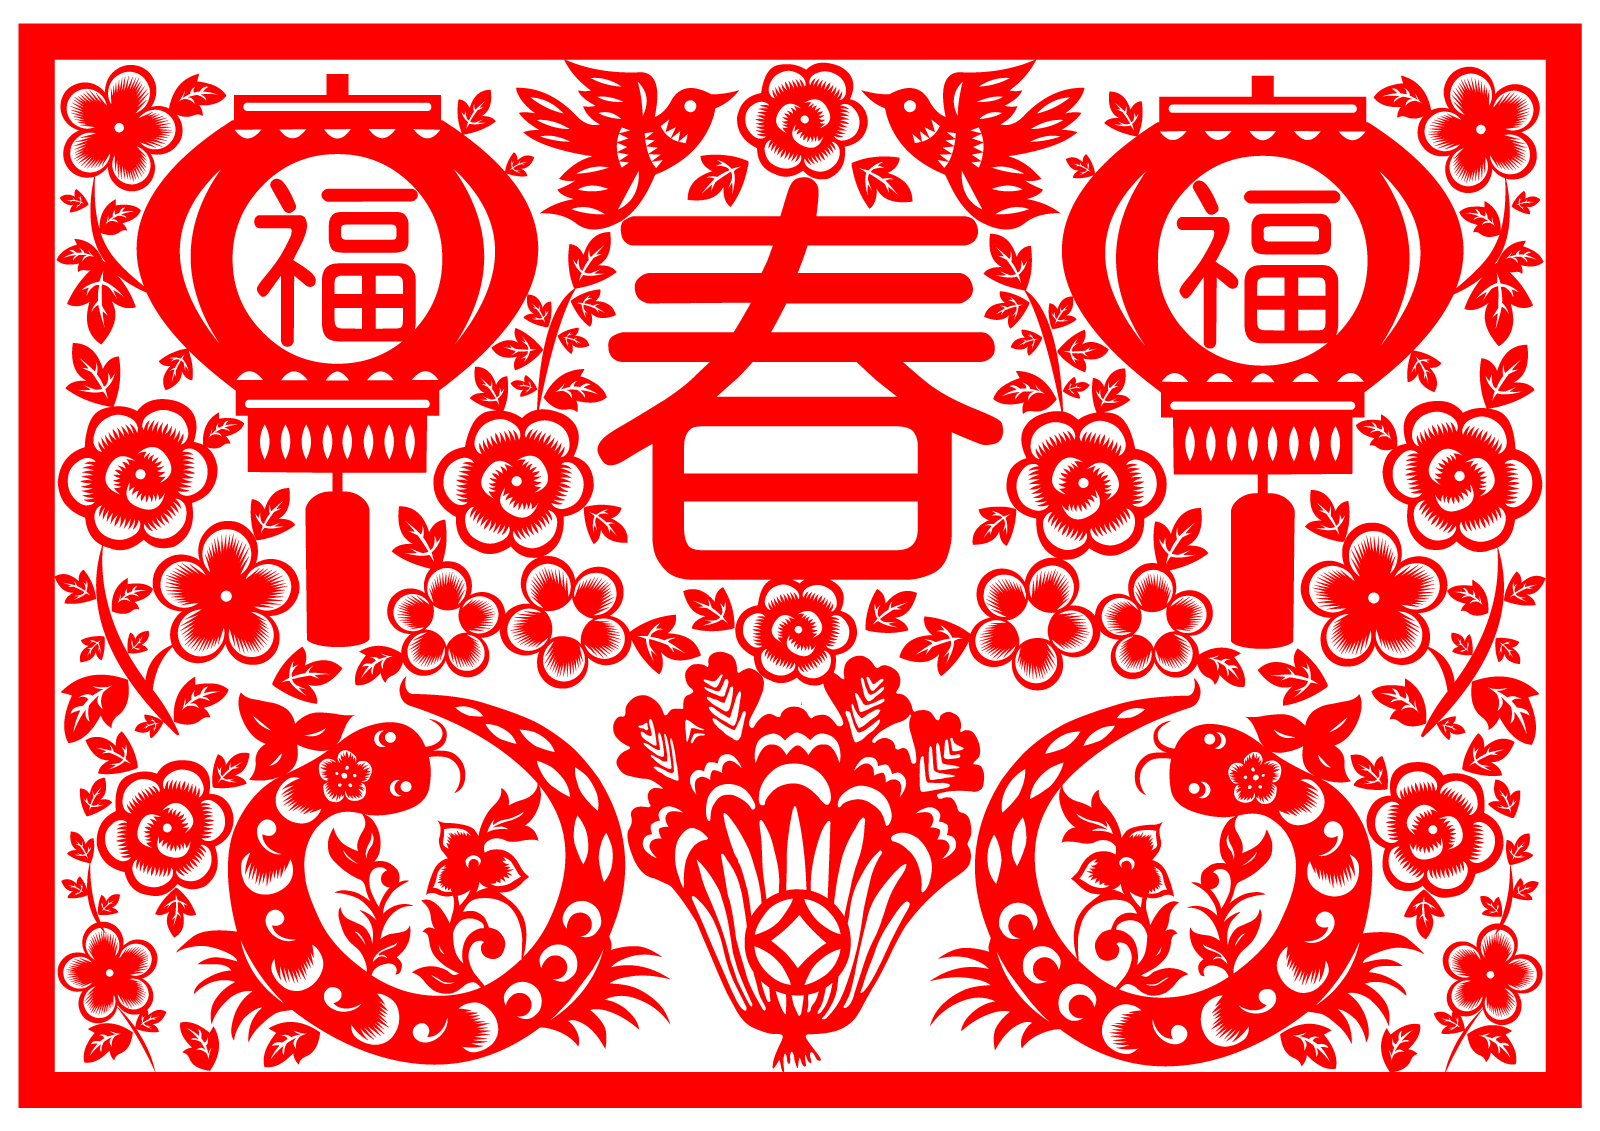 New Year greeting traditional Chinese paper-cut art - China Illustrations Vectors AI ESP Free Download